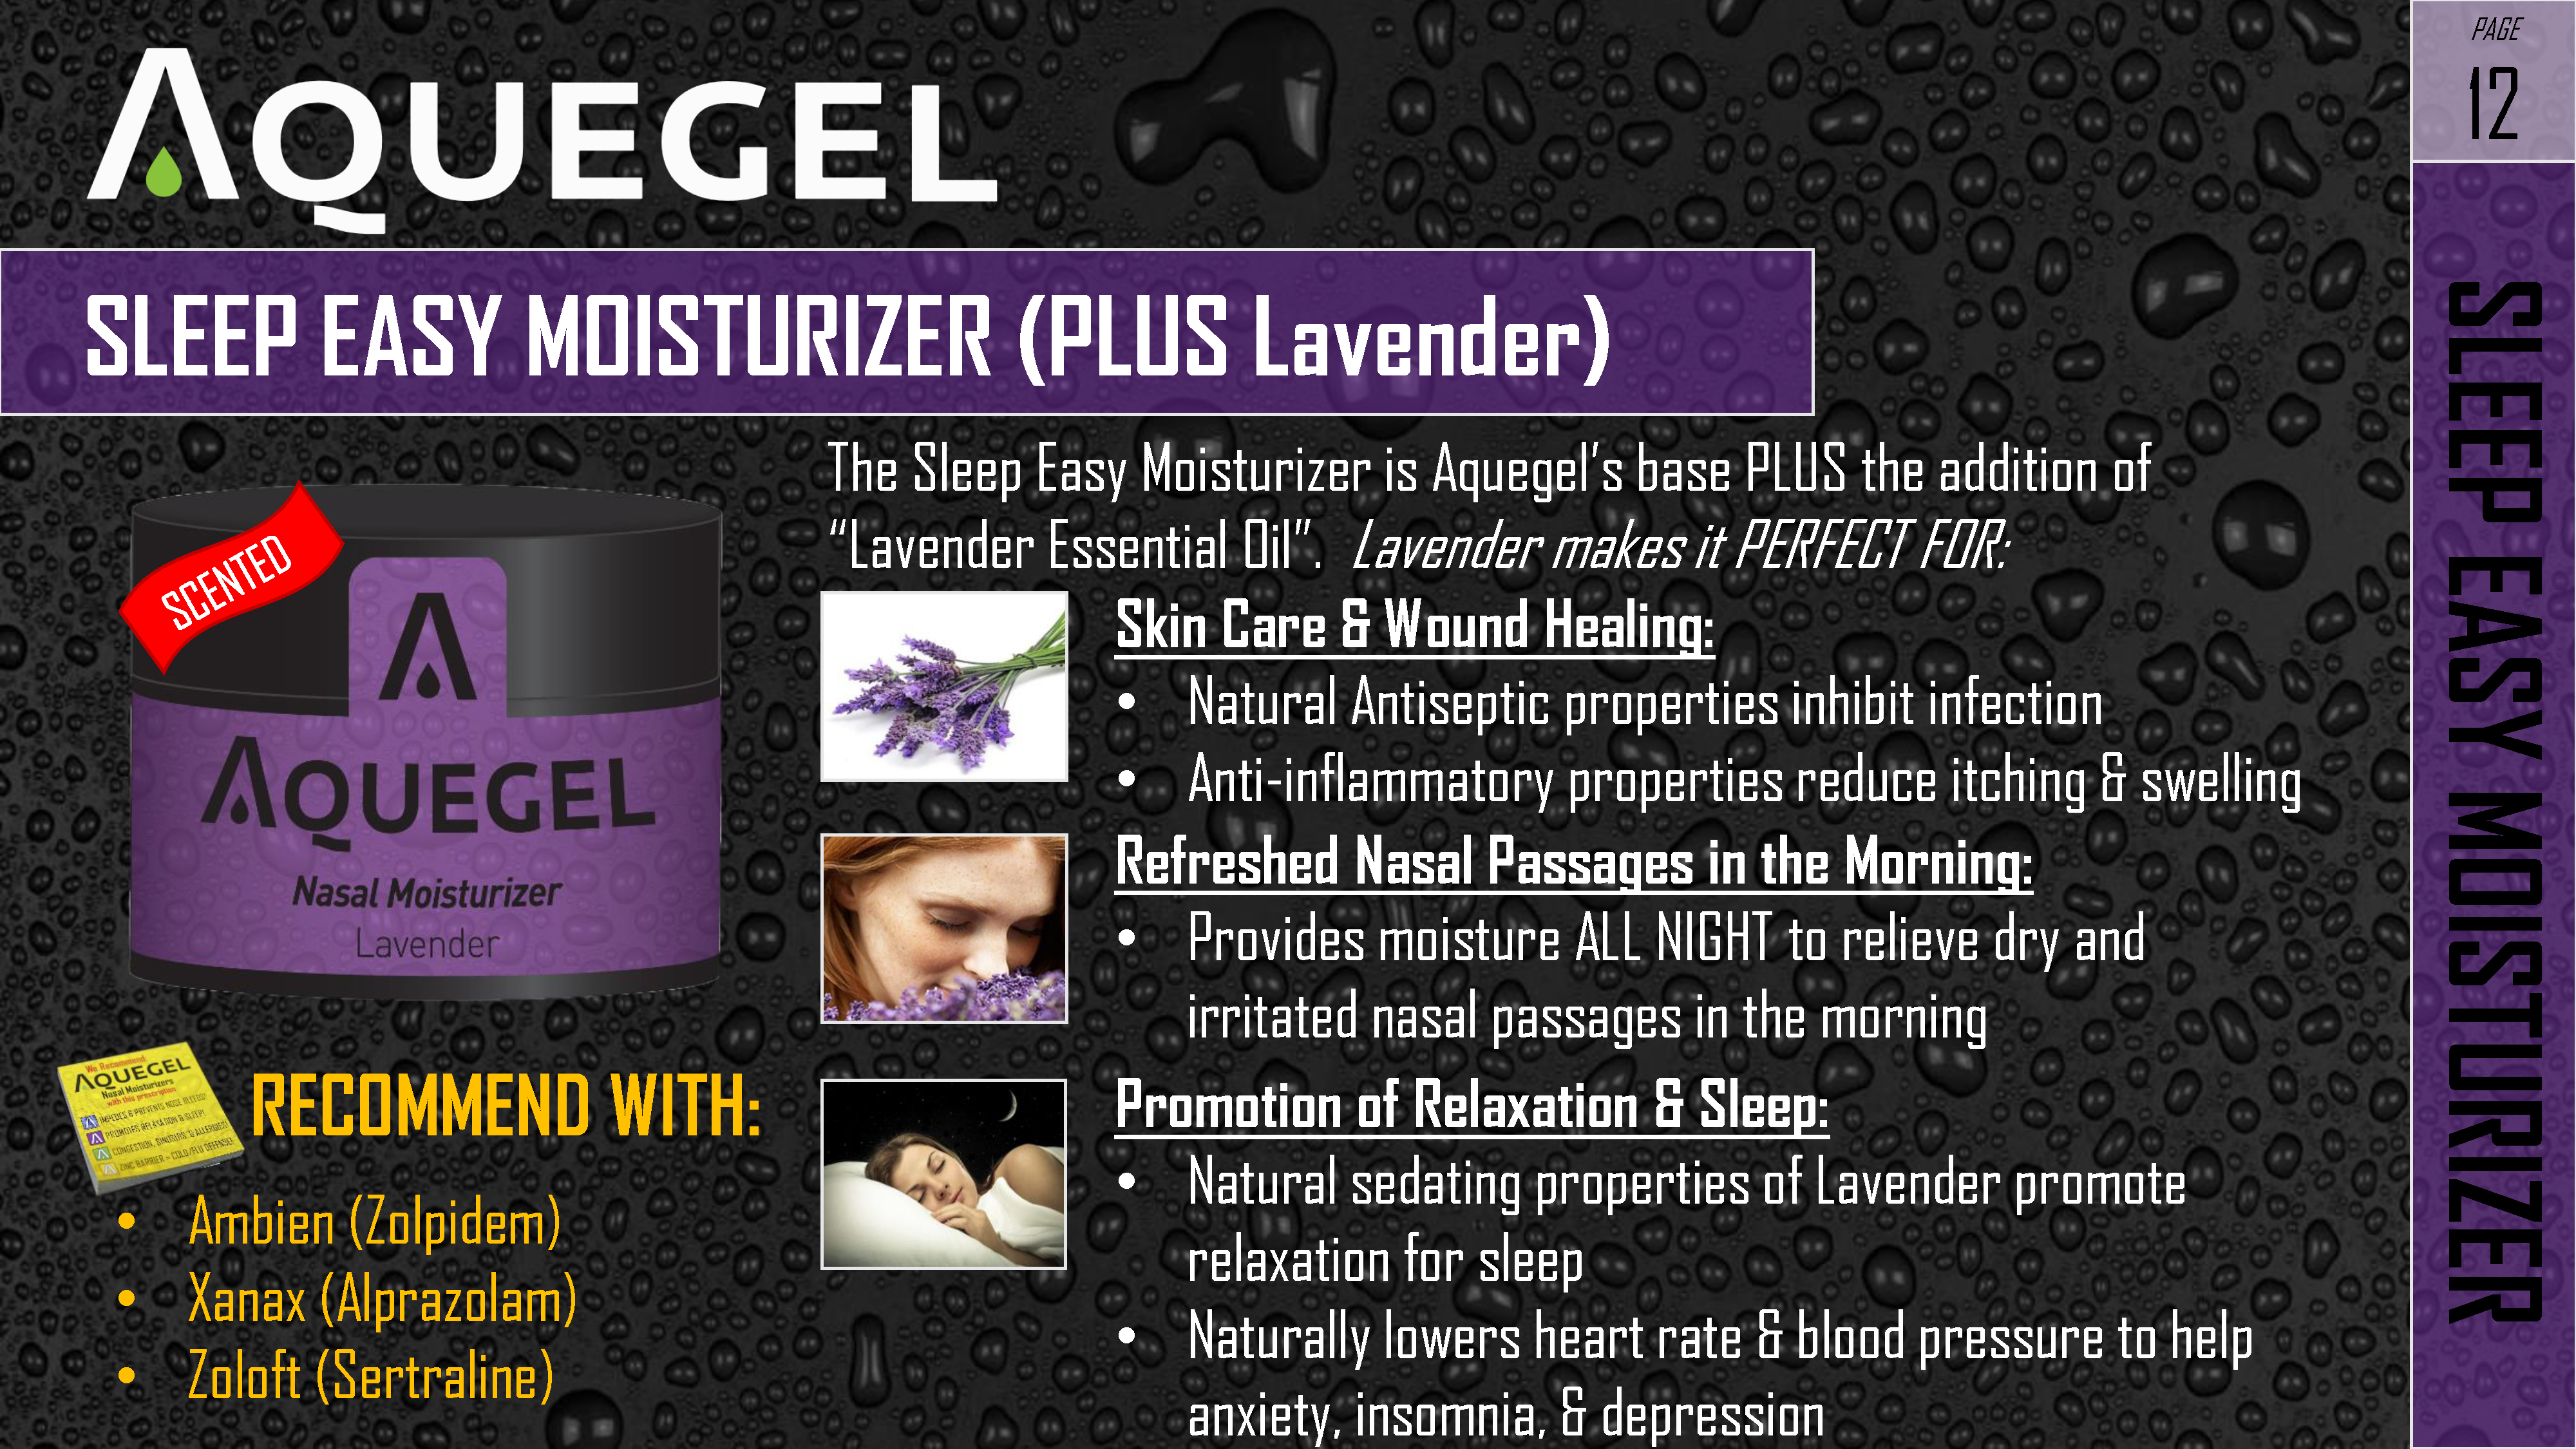 SLEEP EASY MOISTURIZER - 12